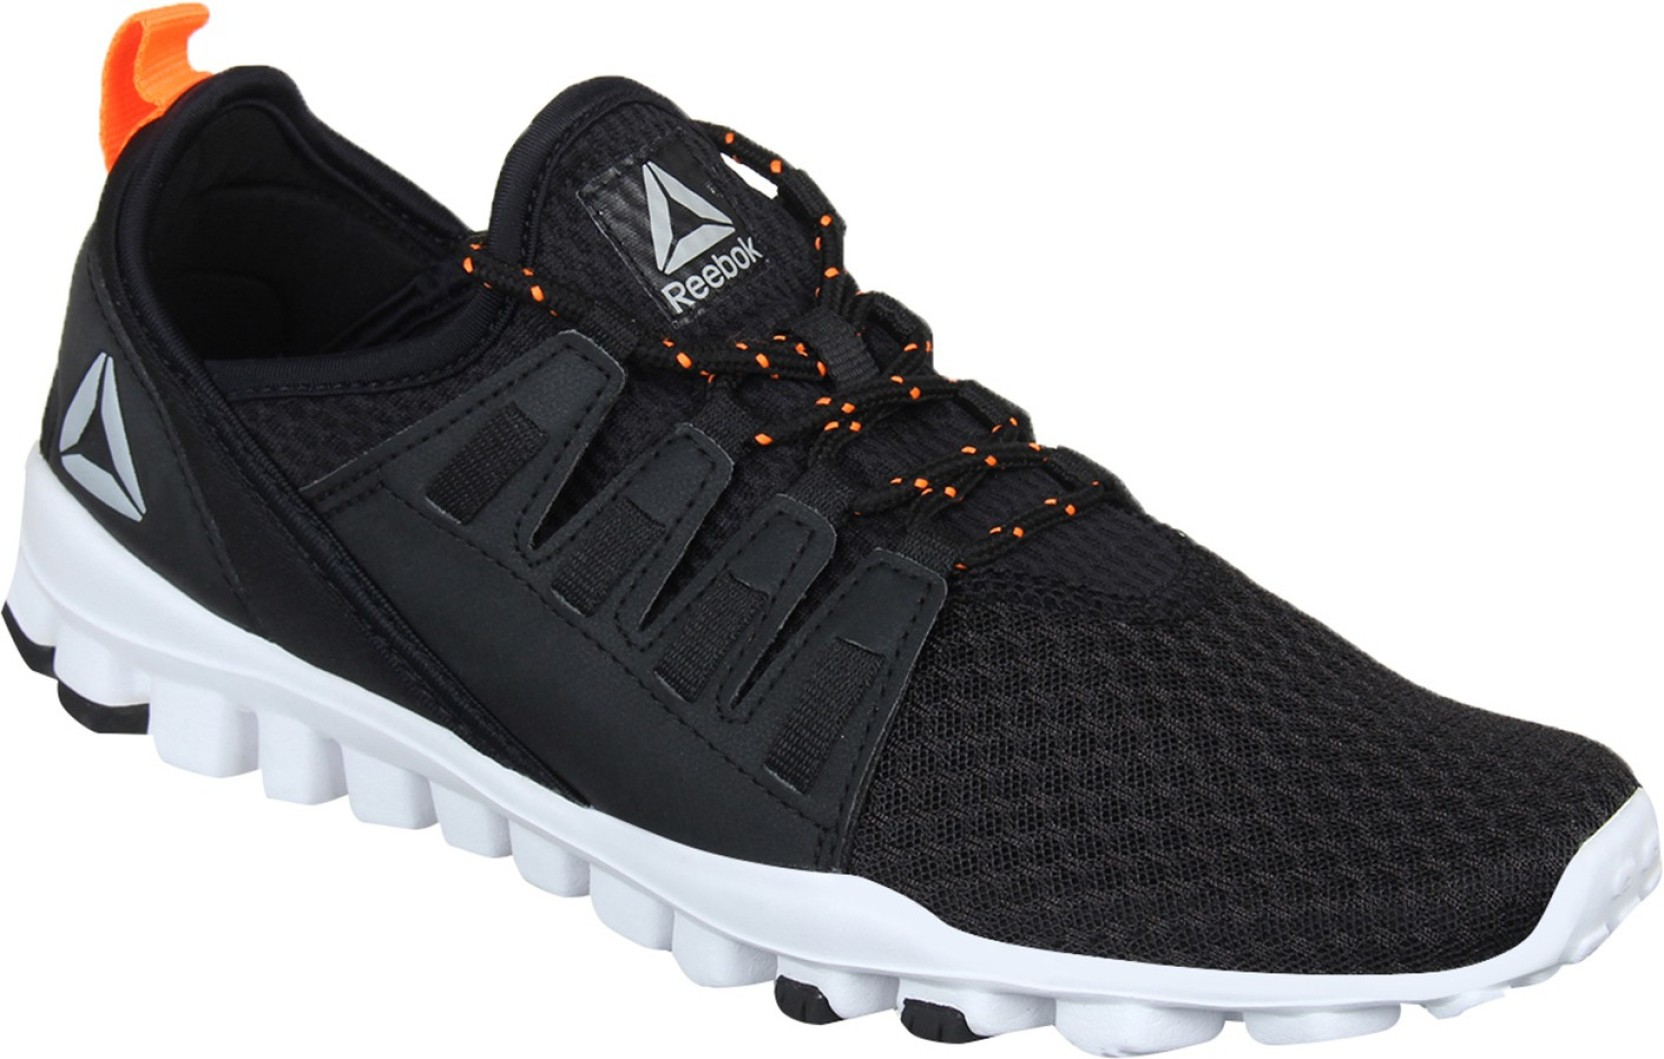 REEBOK Identity Flex Xtreme Running Shoes For Men - Buy REEBOK ... 6f7ab7211